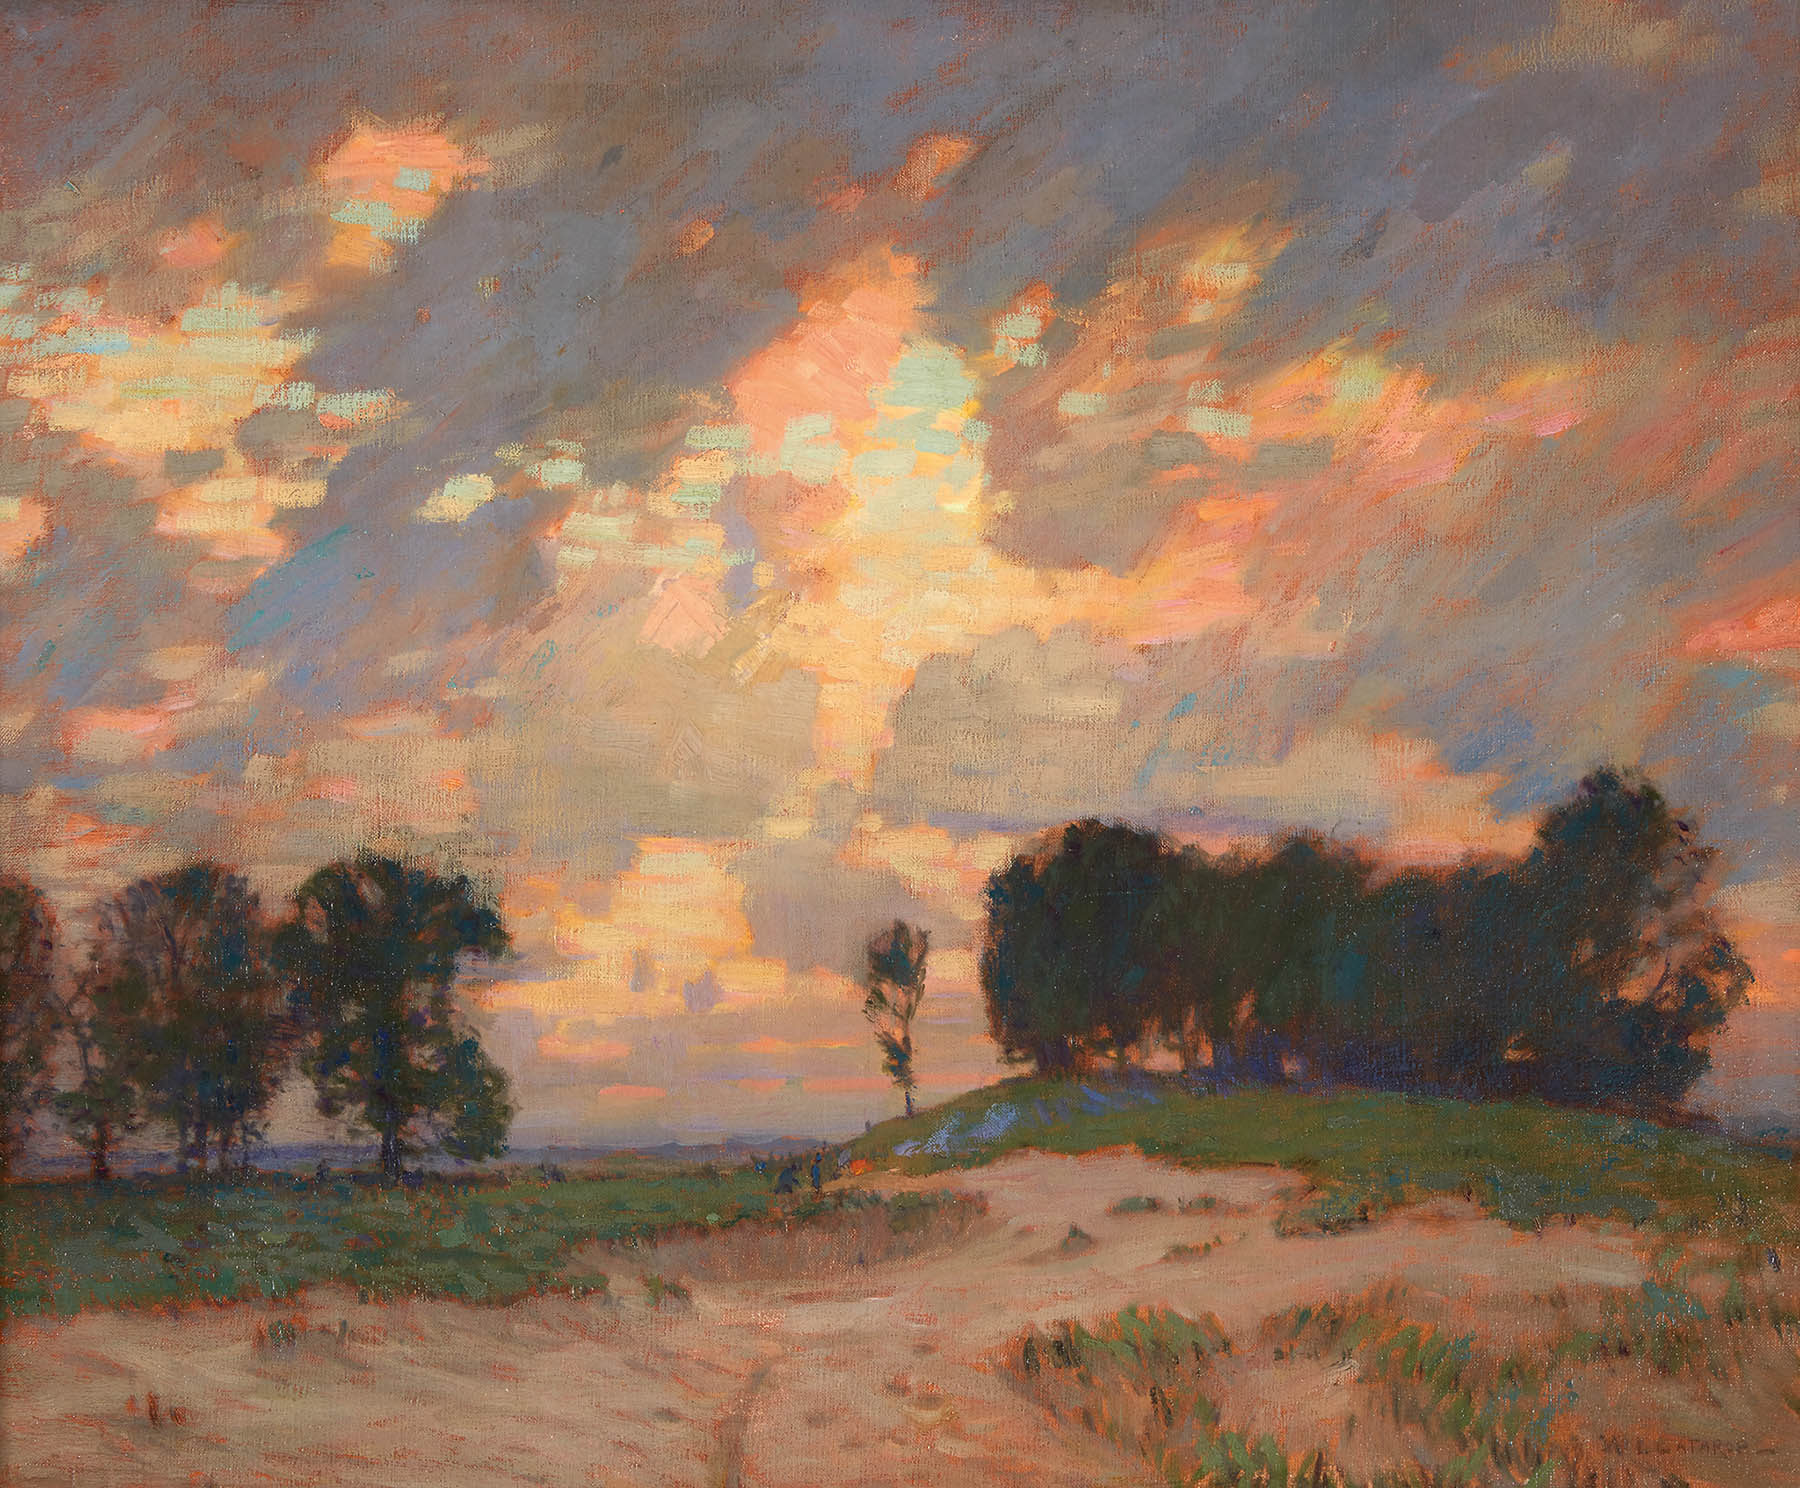 Lot 39 | William Langson Lathrop (American, 1859-1938), The Bonfire, oil on canvas-SOLD FOR $112,500